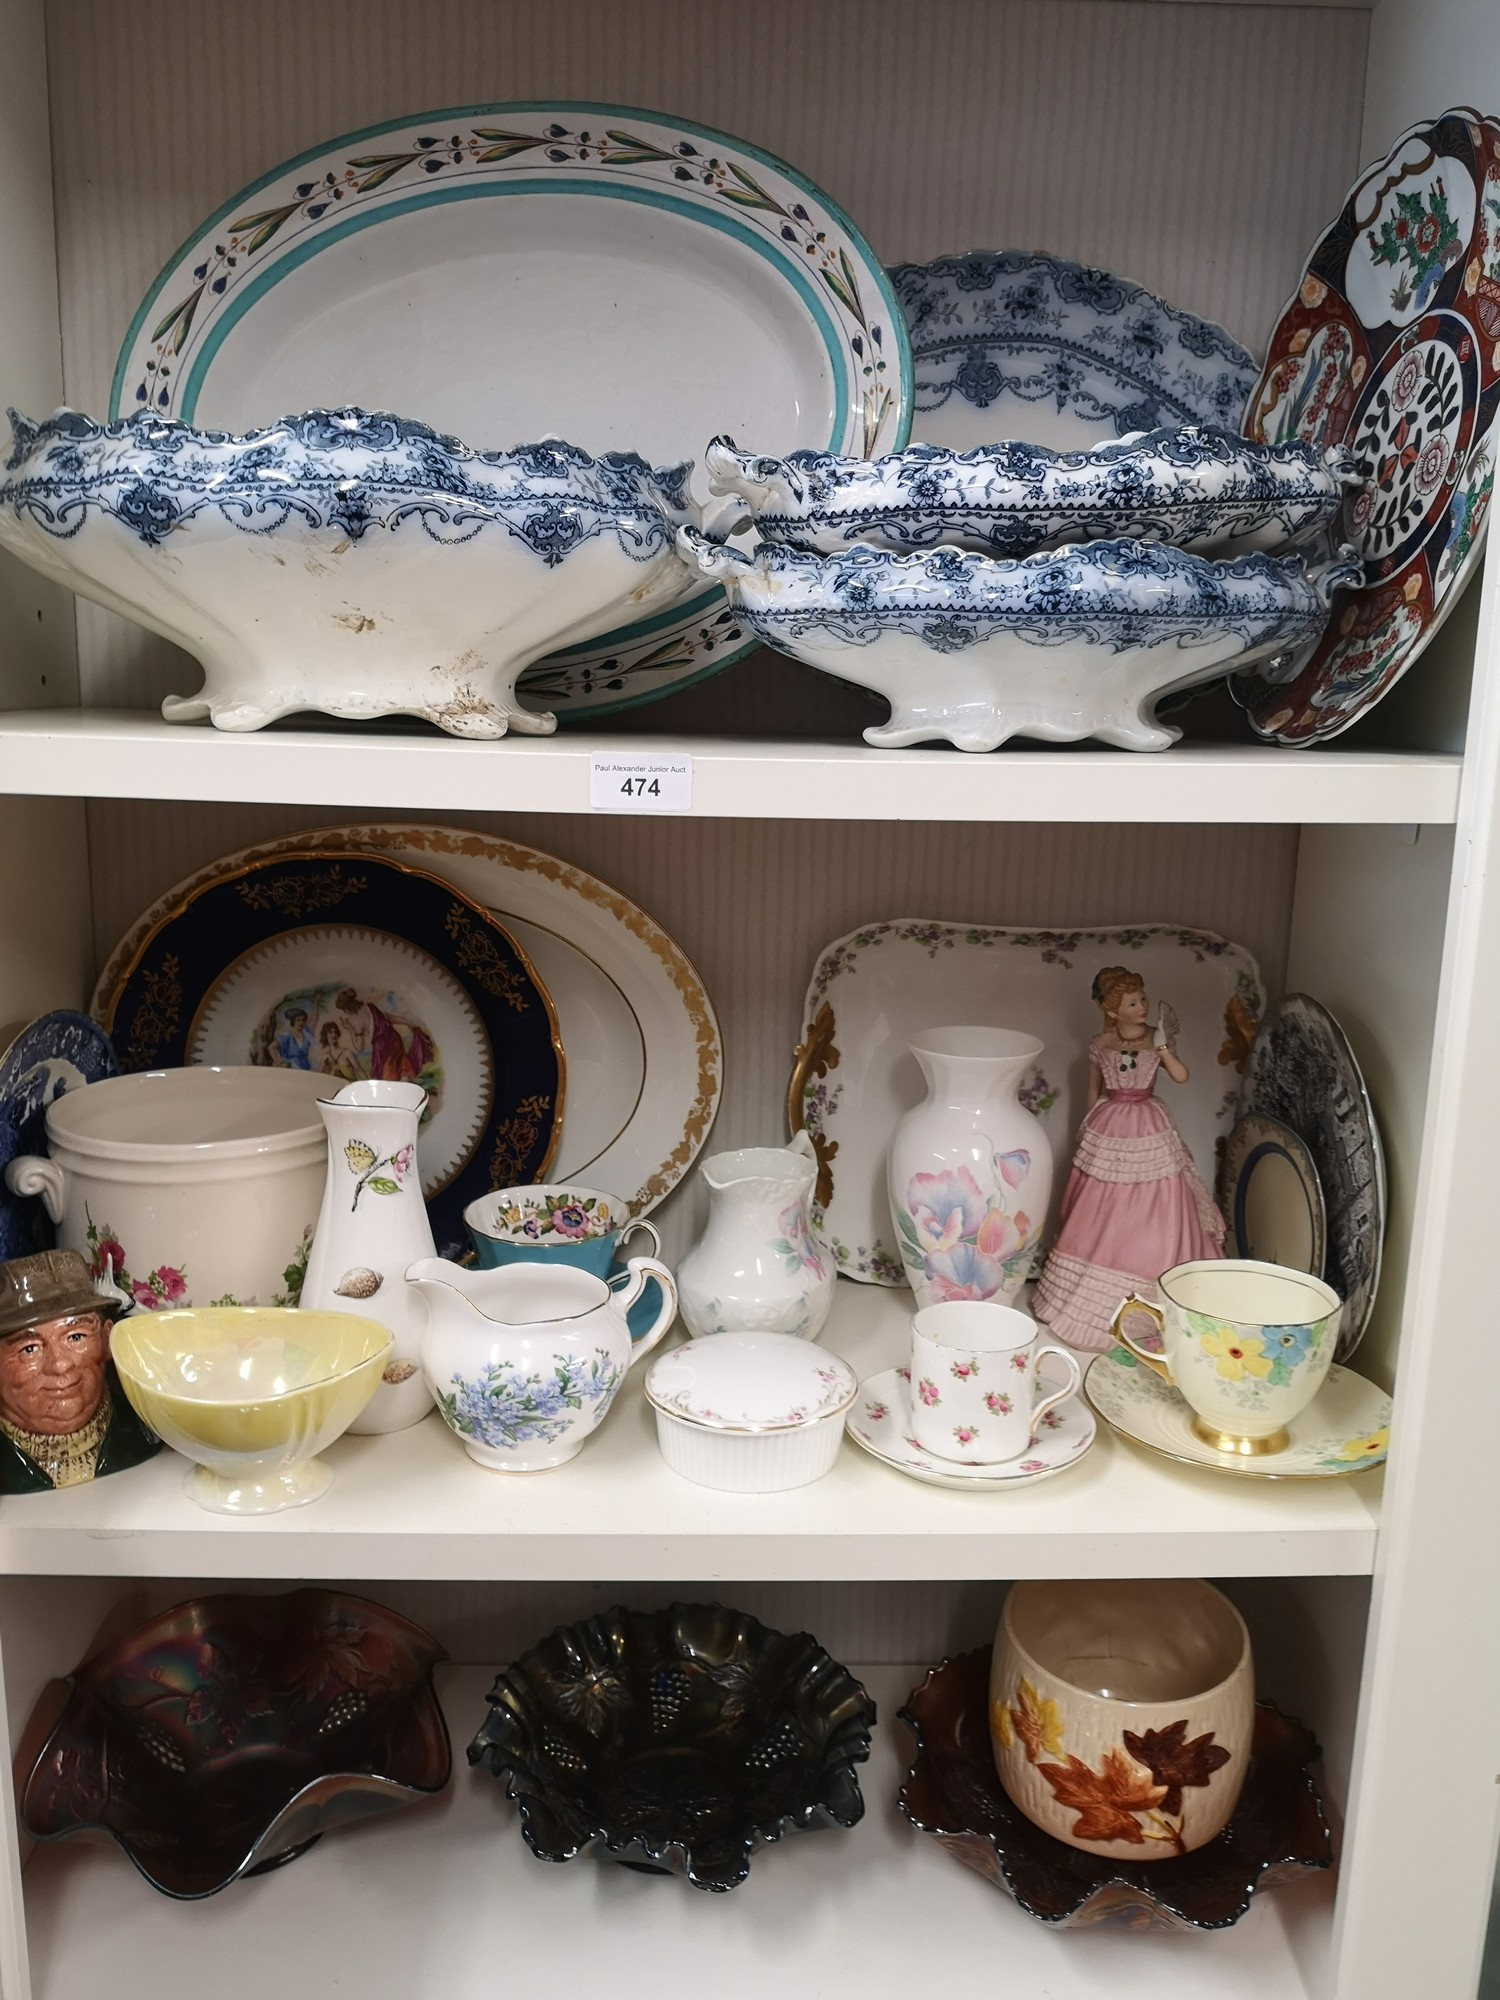 3 shelfs of collectables includes carnival glass, carlton ware etc.